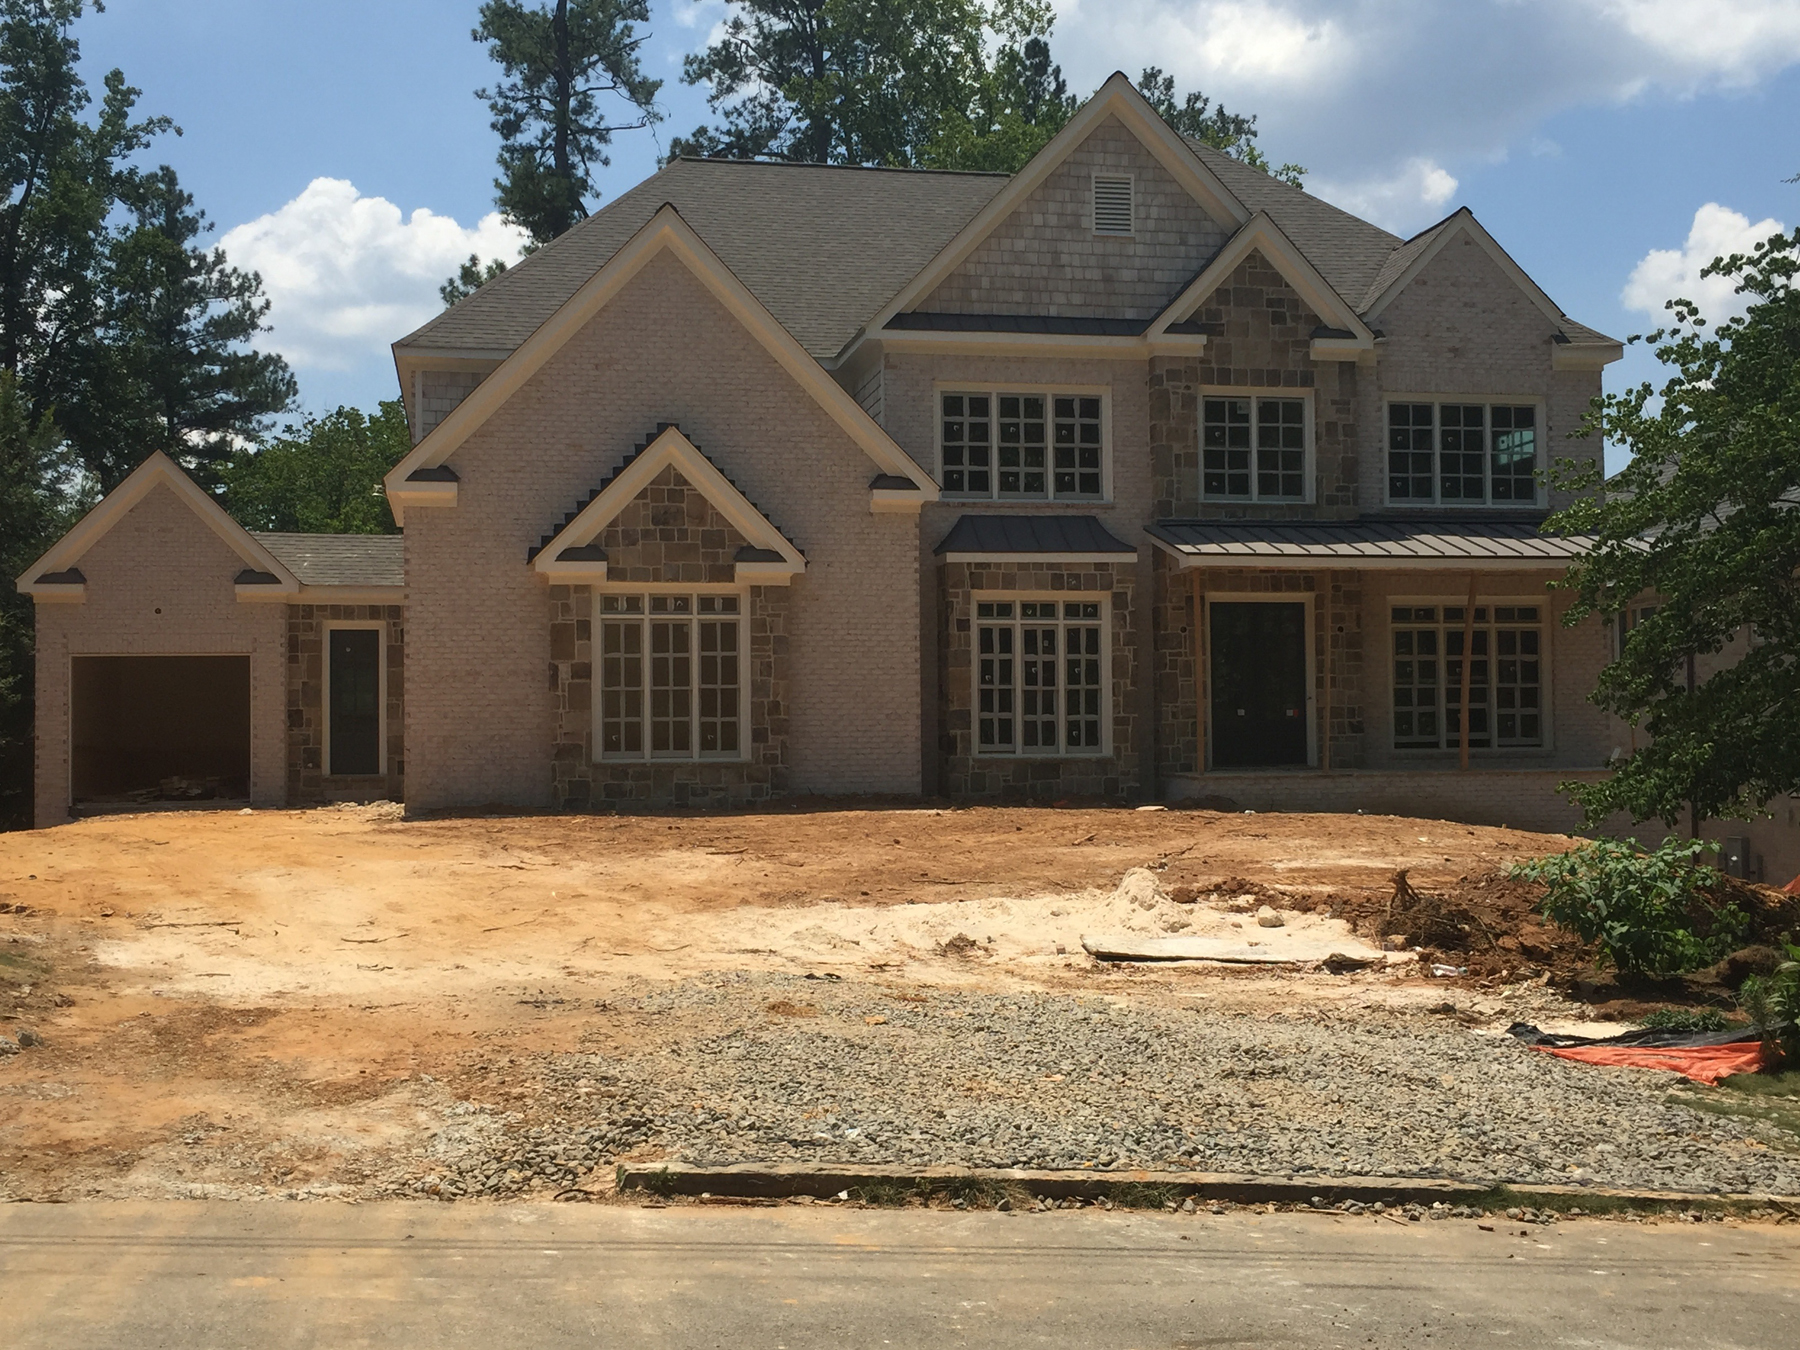 Single Family Home for Sale at Custom Home Under Construction 580 High Point Lane Atlanta, Georgia, 30342 United States